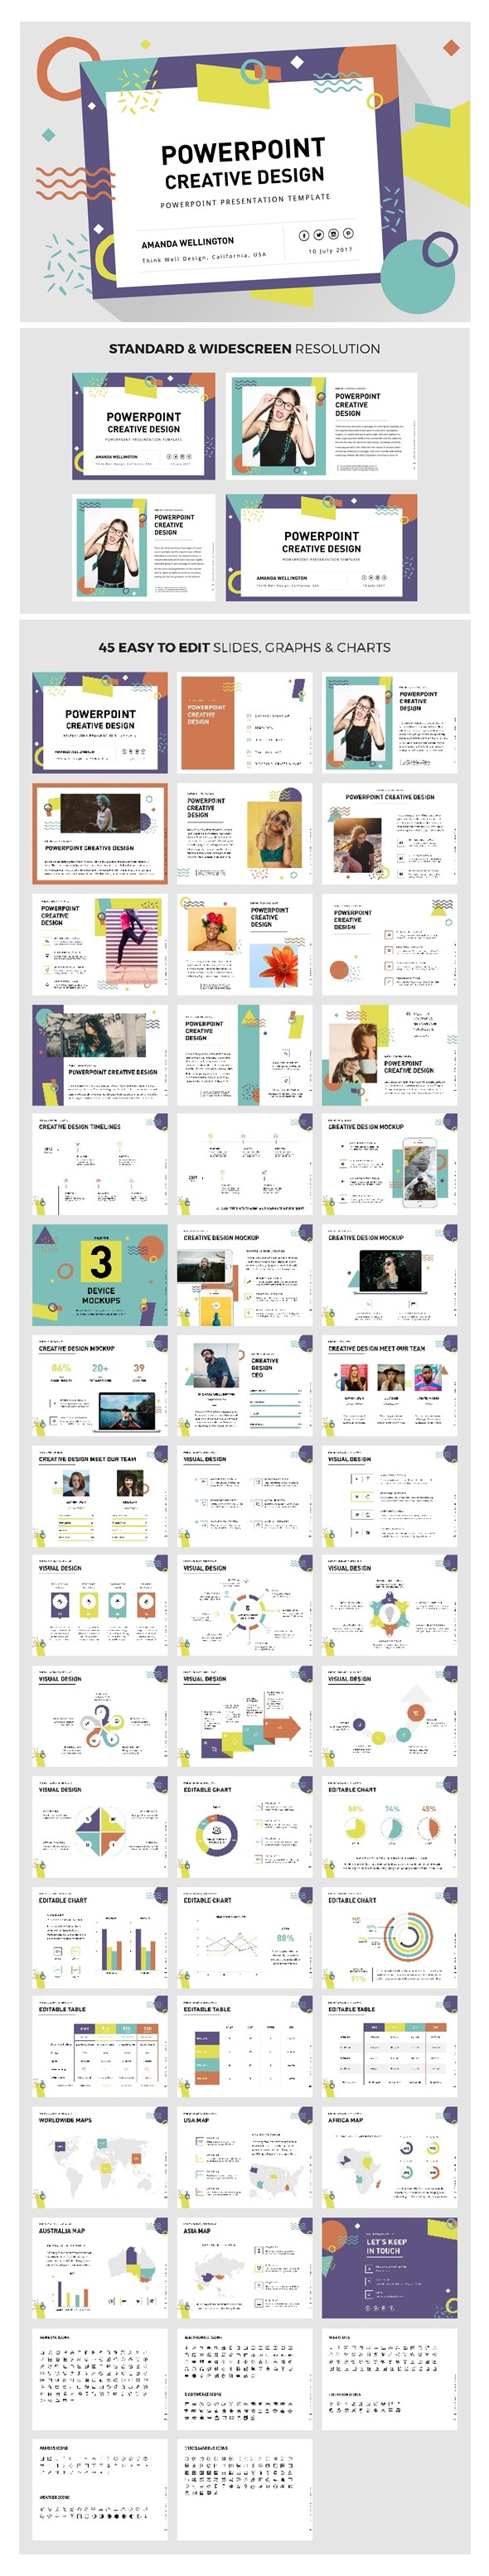 PowerPoint Creative Design Template - Creative PowerPoint Templates